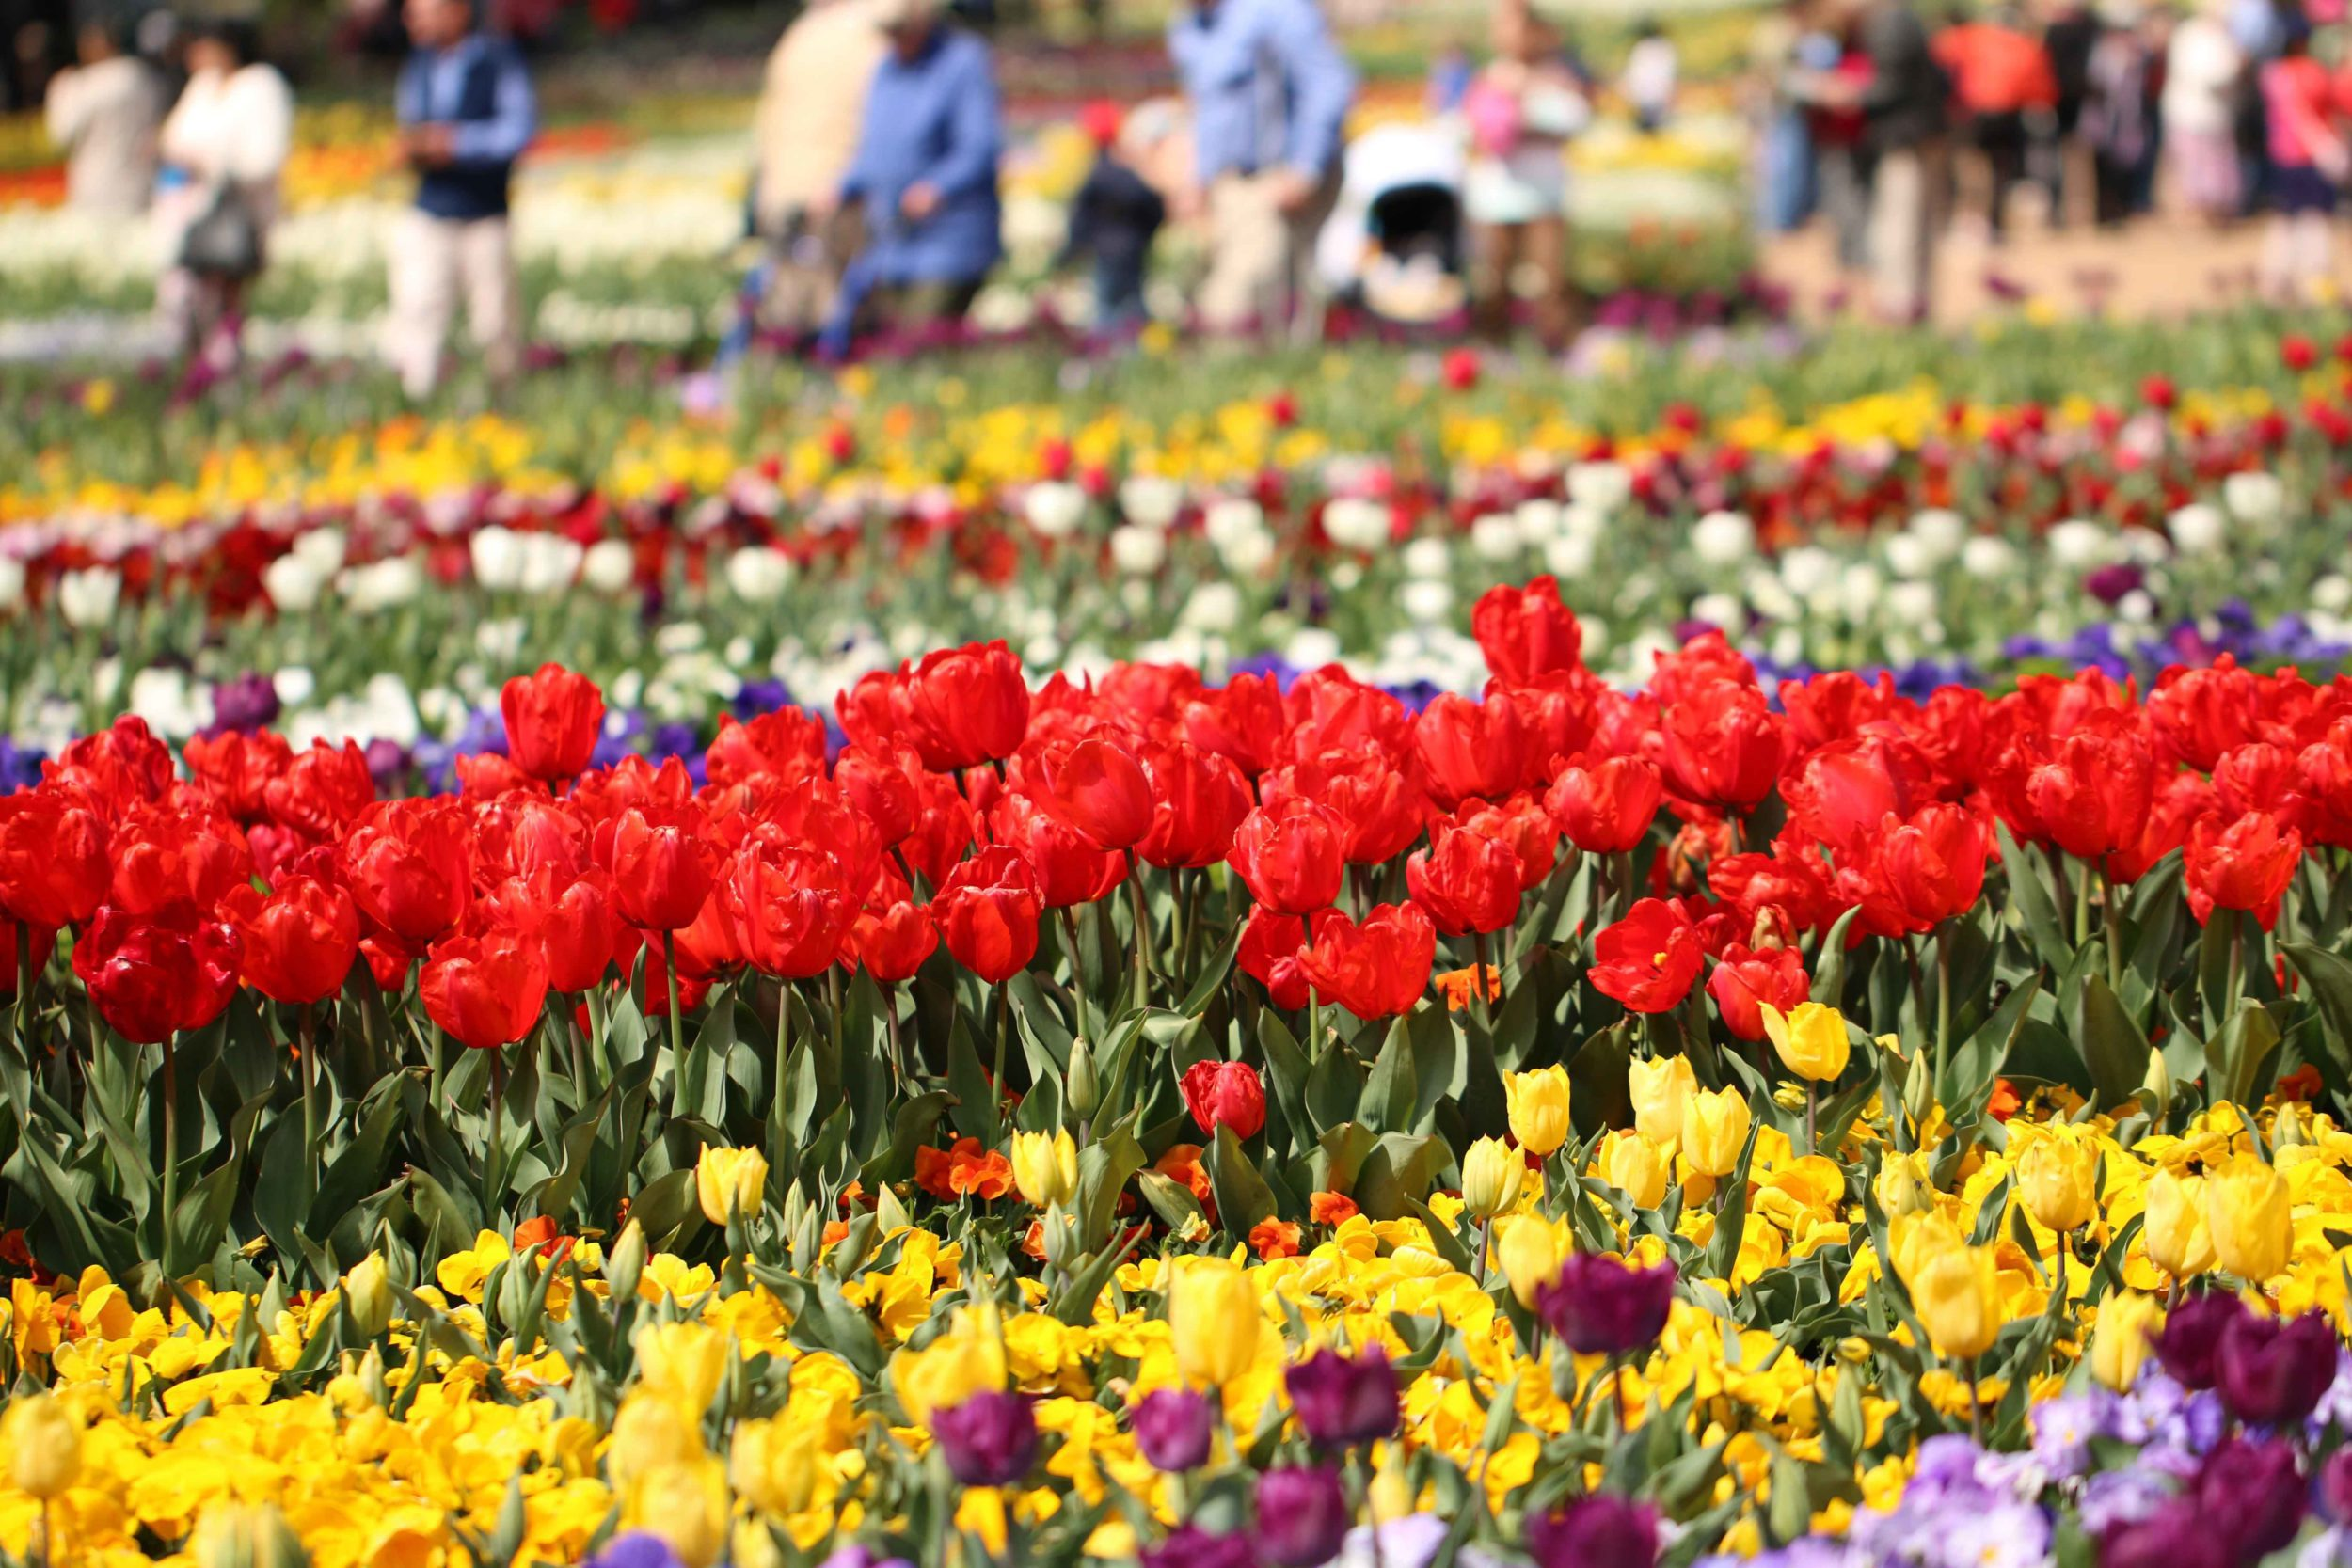 Main Flower Display at Floriade in Canberra